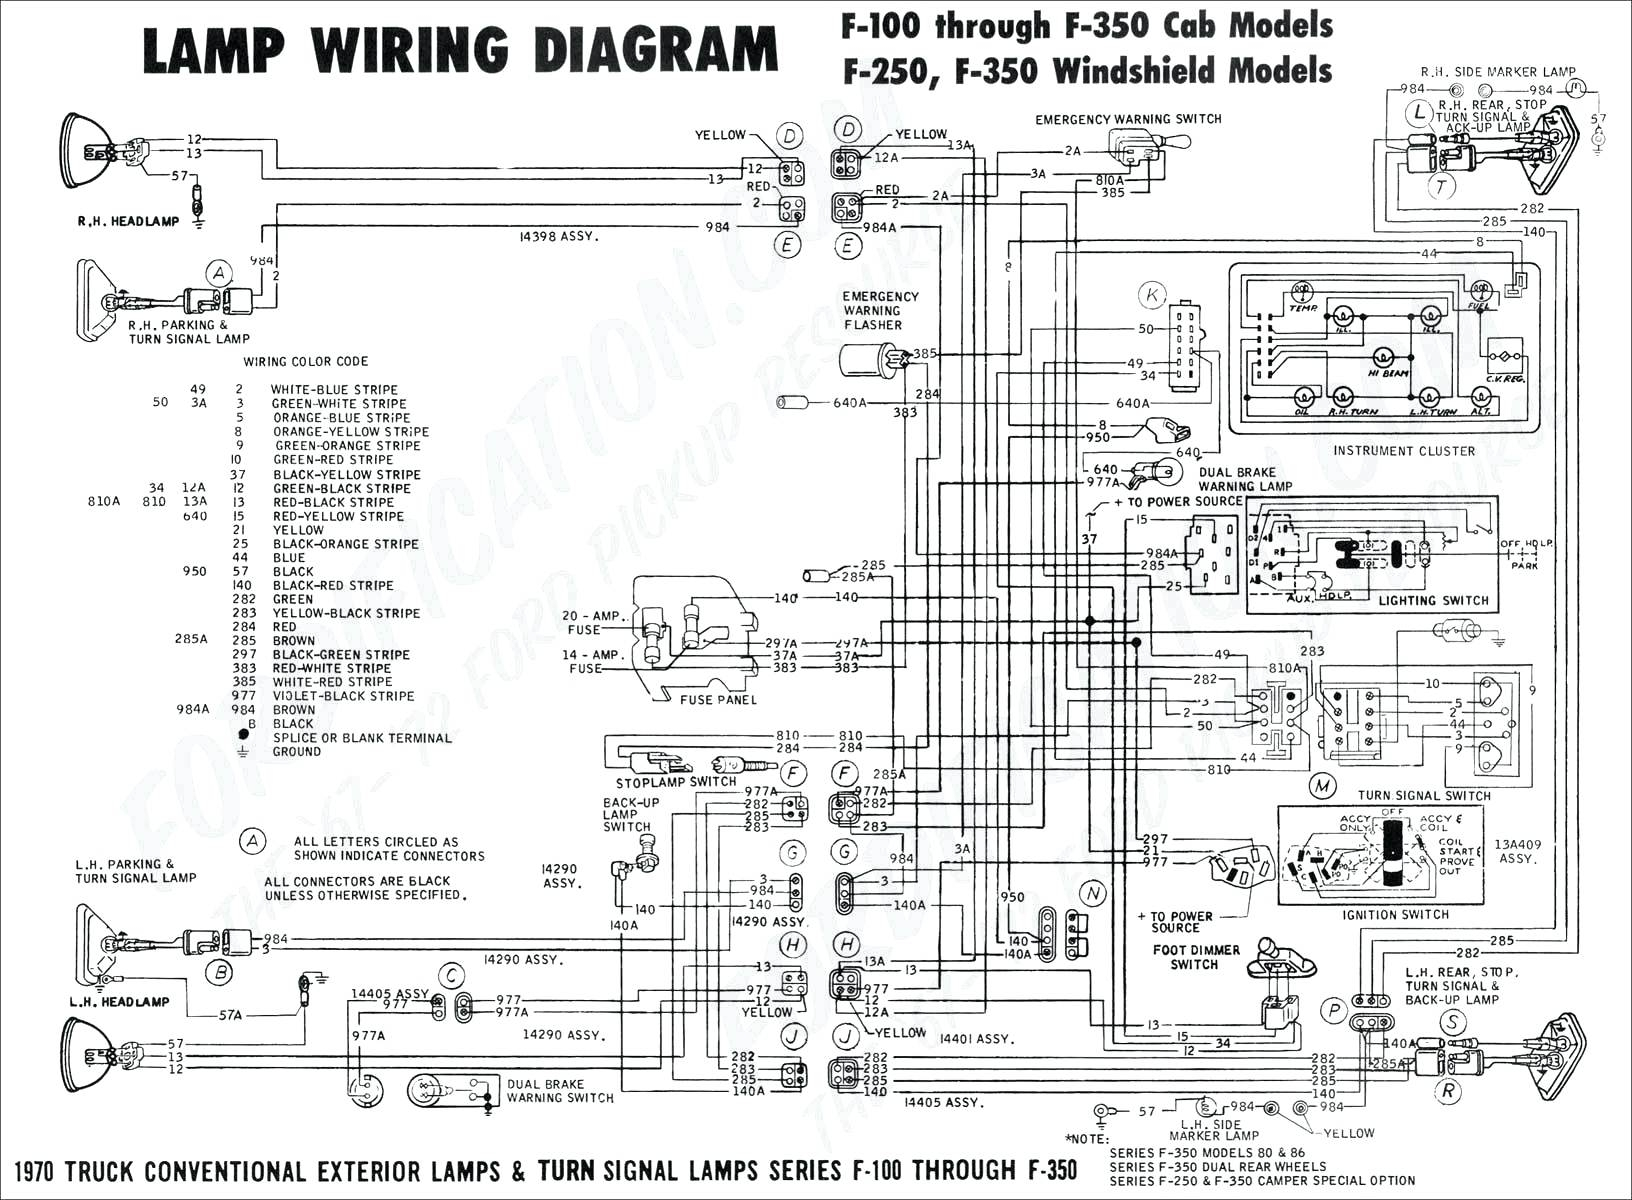 ford f250 starter solenoid wiring diagram | free wiring ... trailer wiring diagram for ford f250 #13